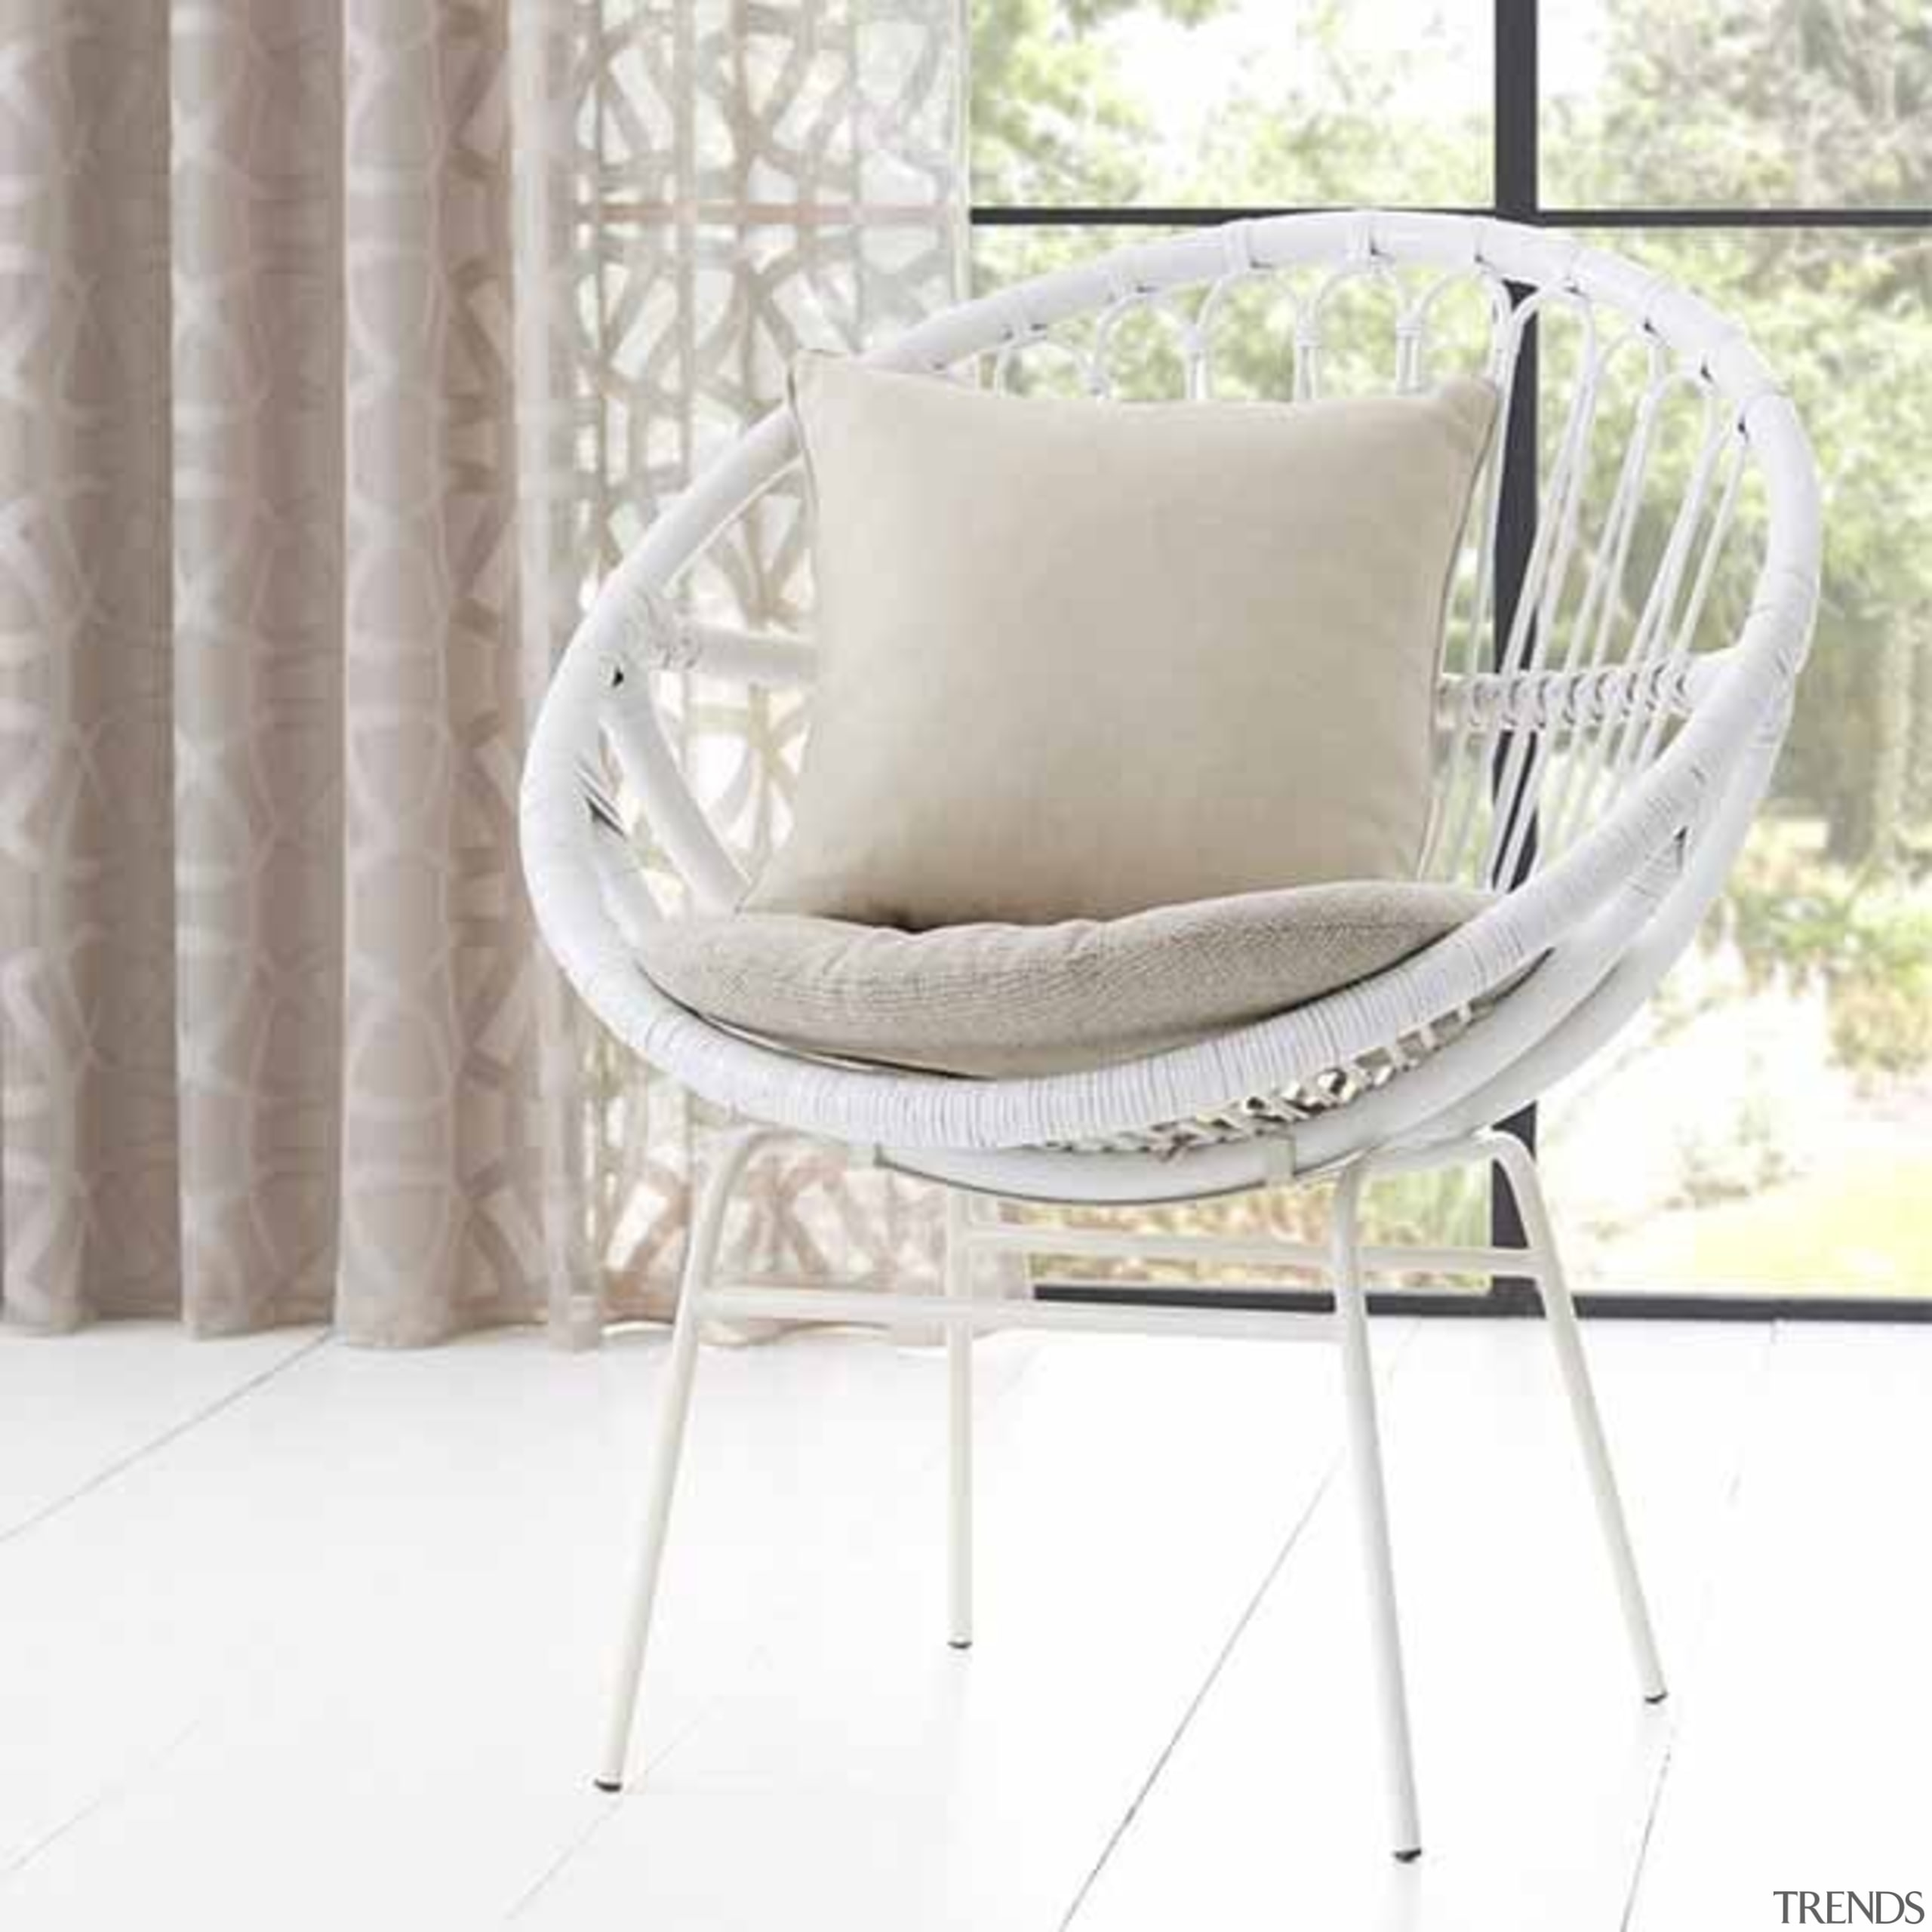 Jali 5 - bed frame | chair | bed frame, chair, cushion, furniture, product, white